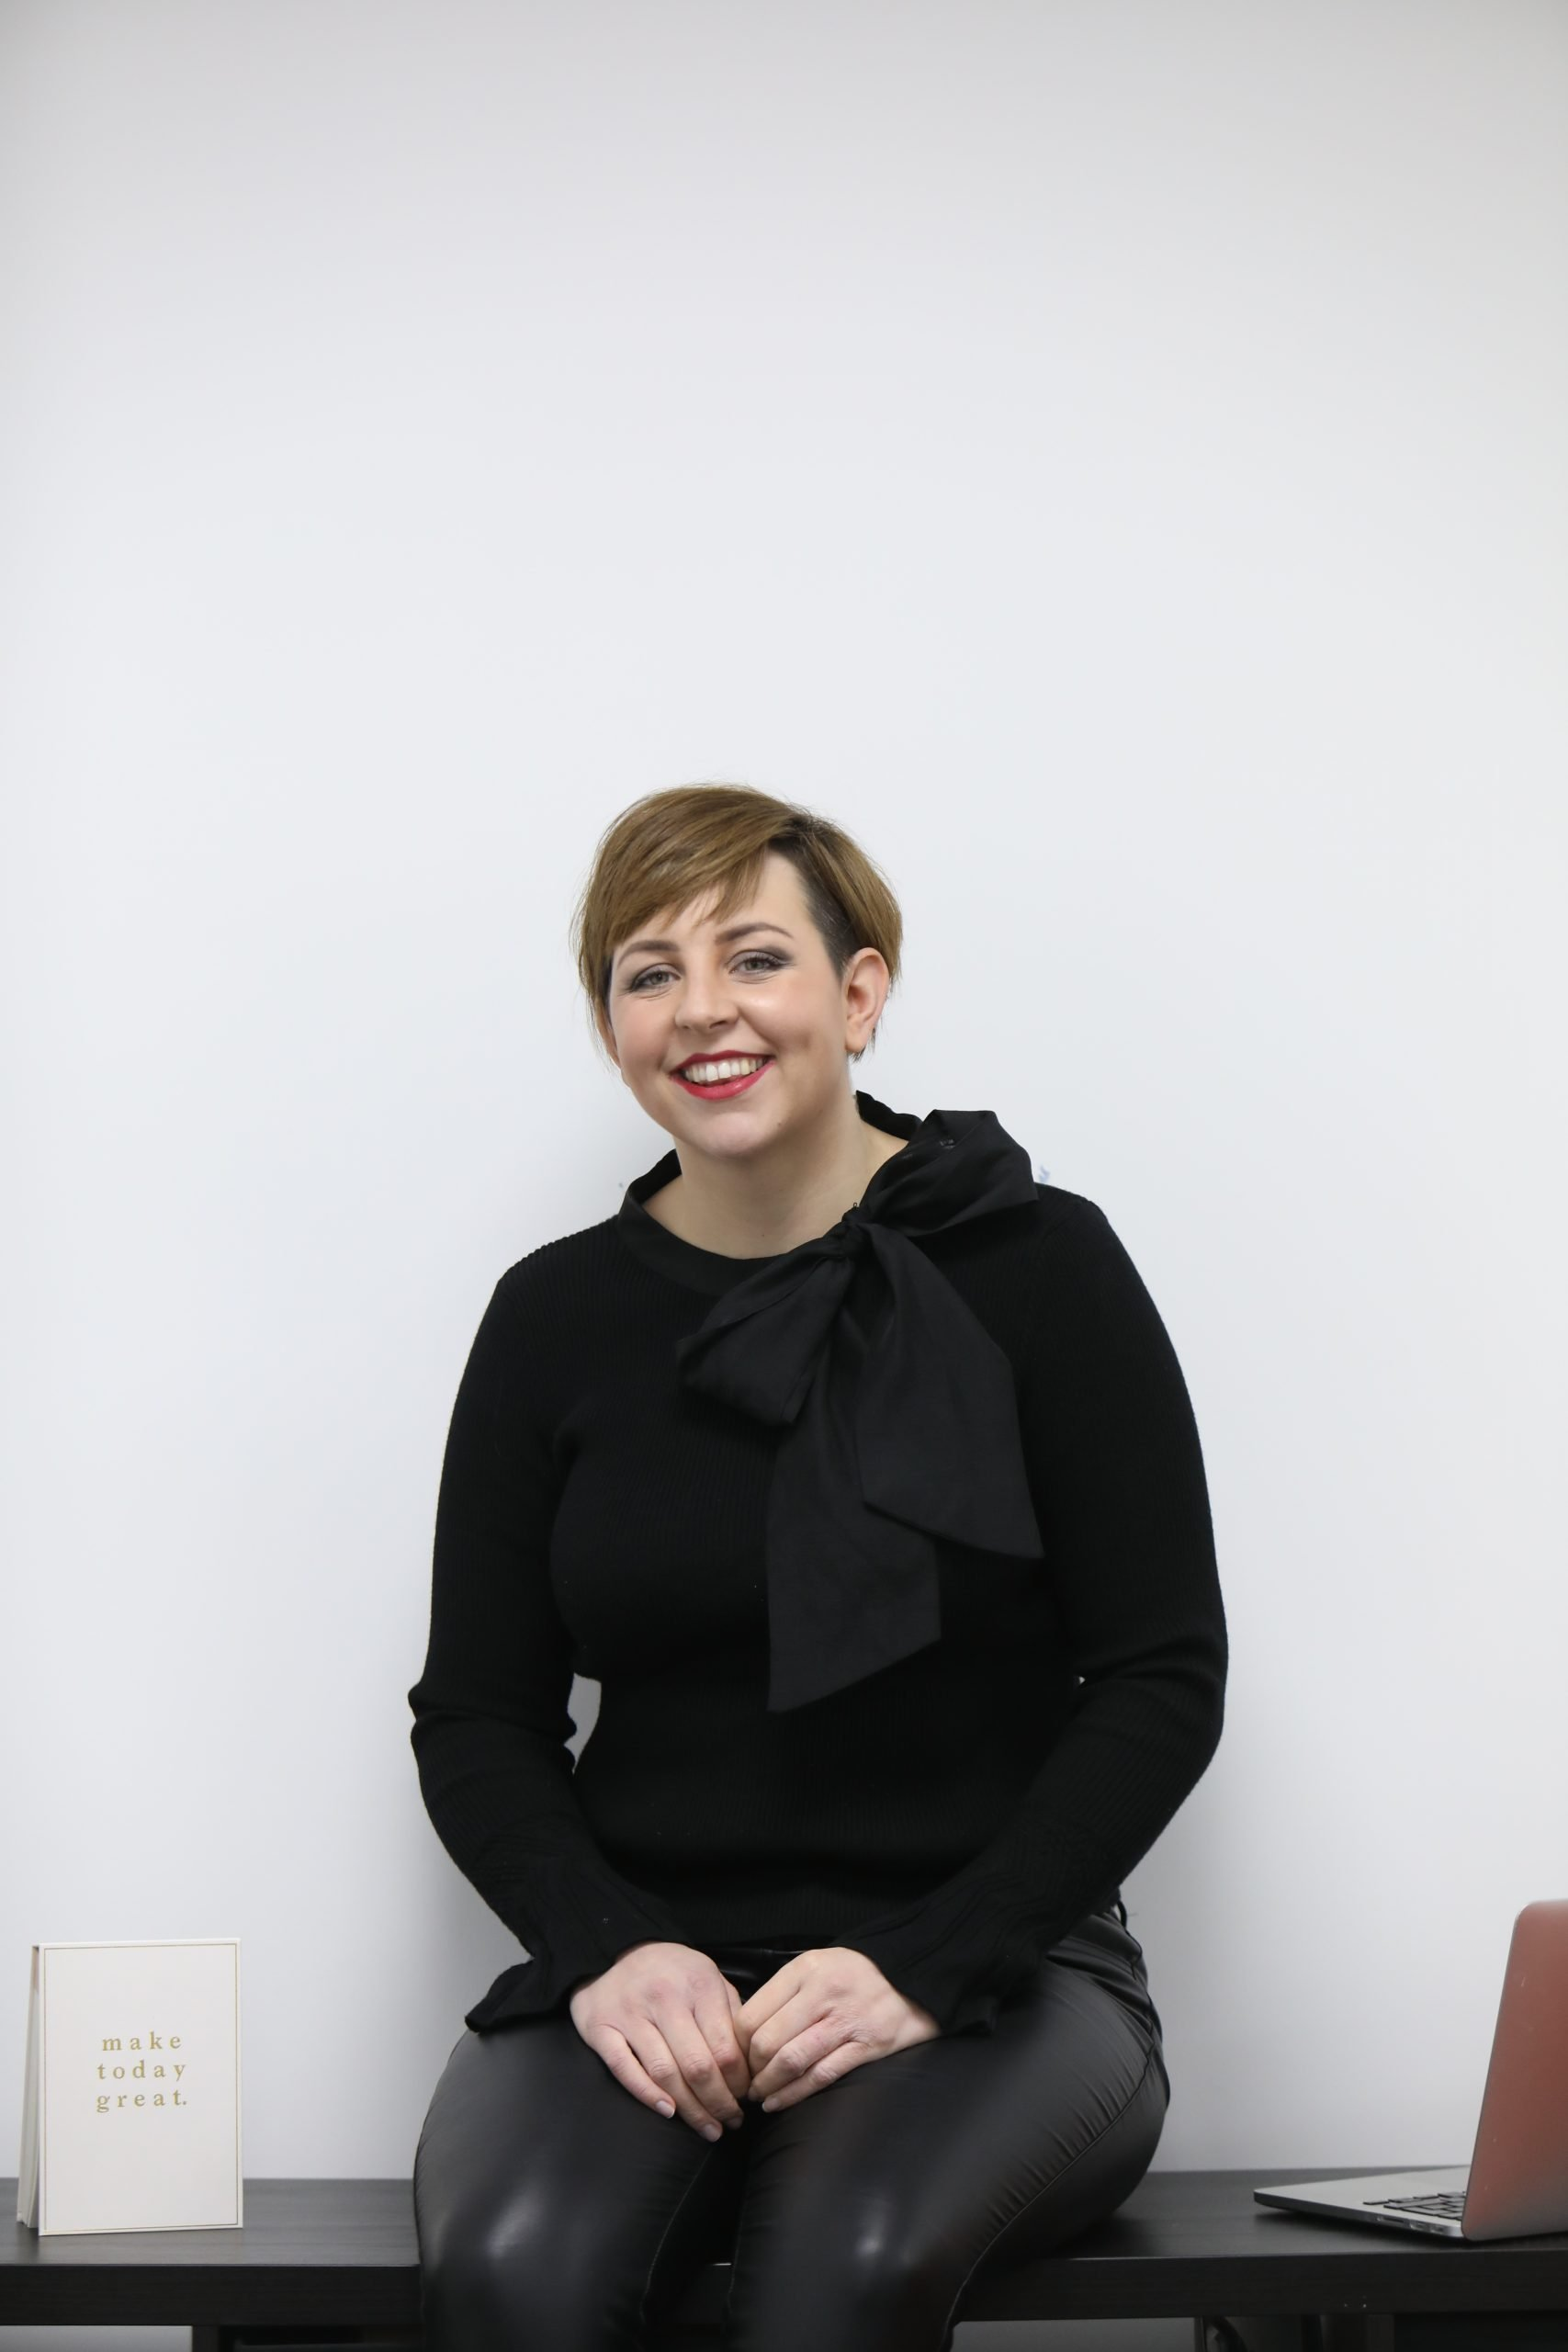 Hayley - Your business consultant